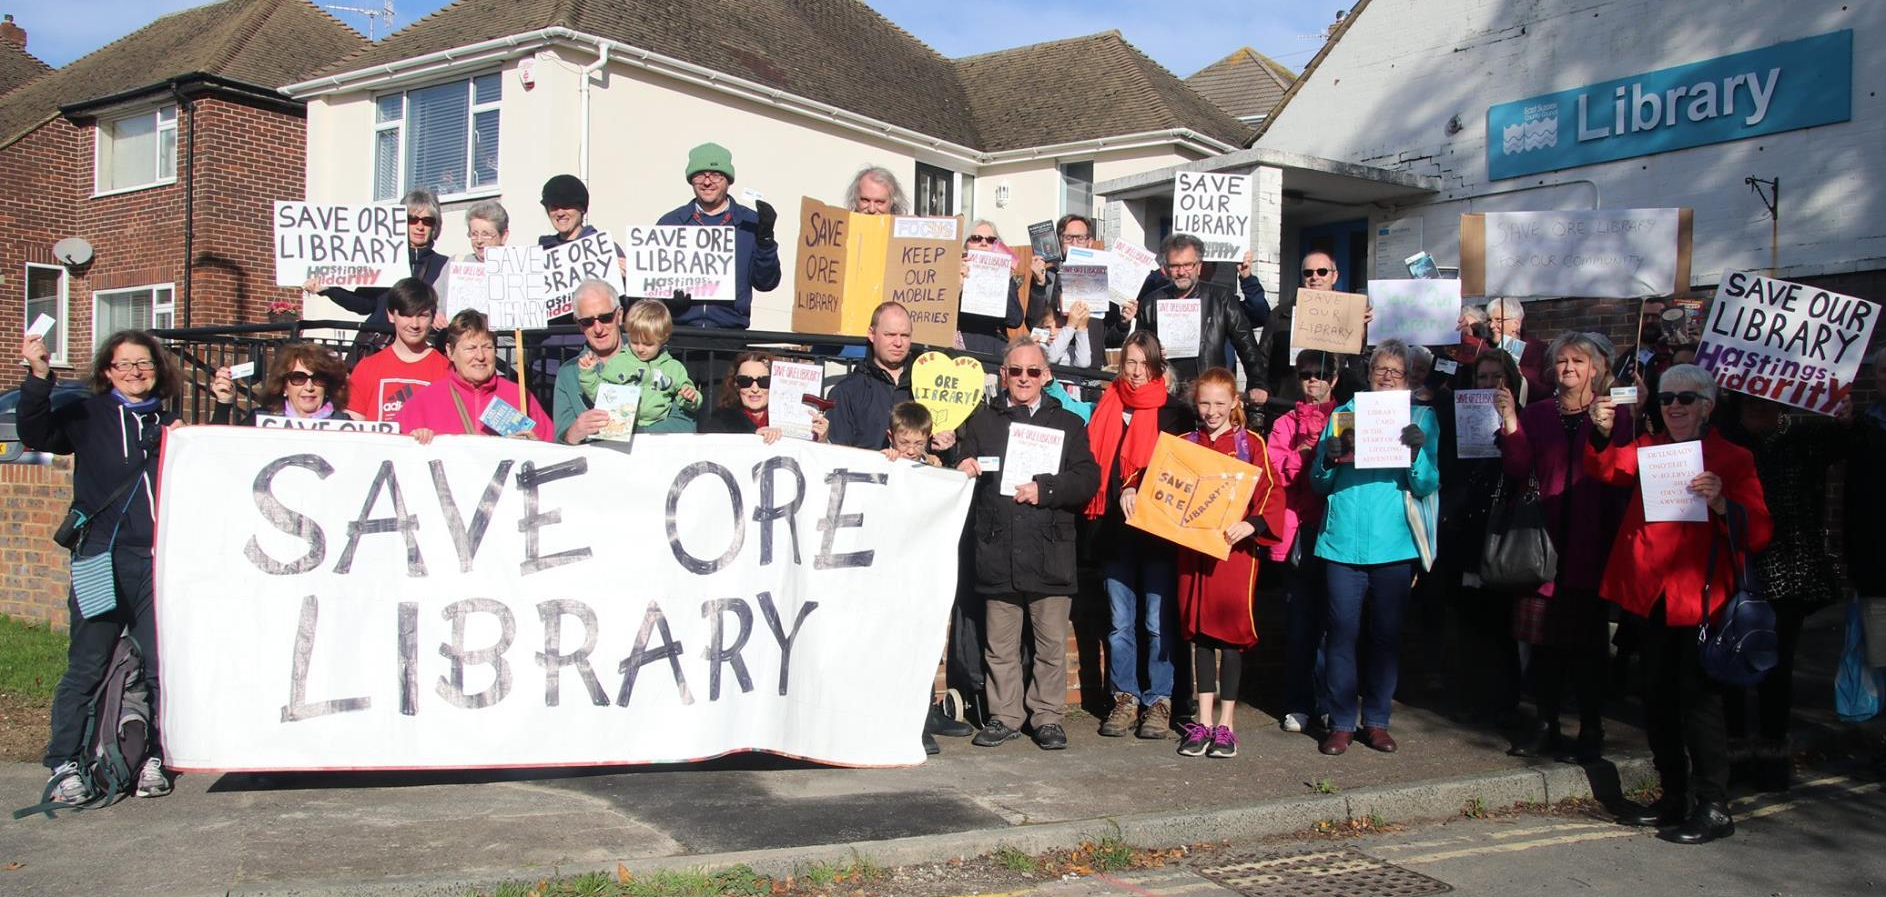 When will the doors of Ore Library finally reopen?